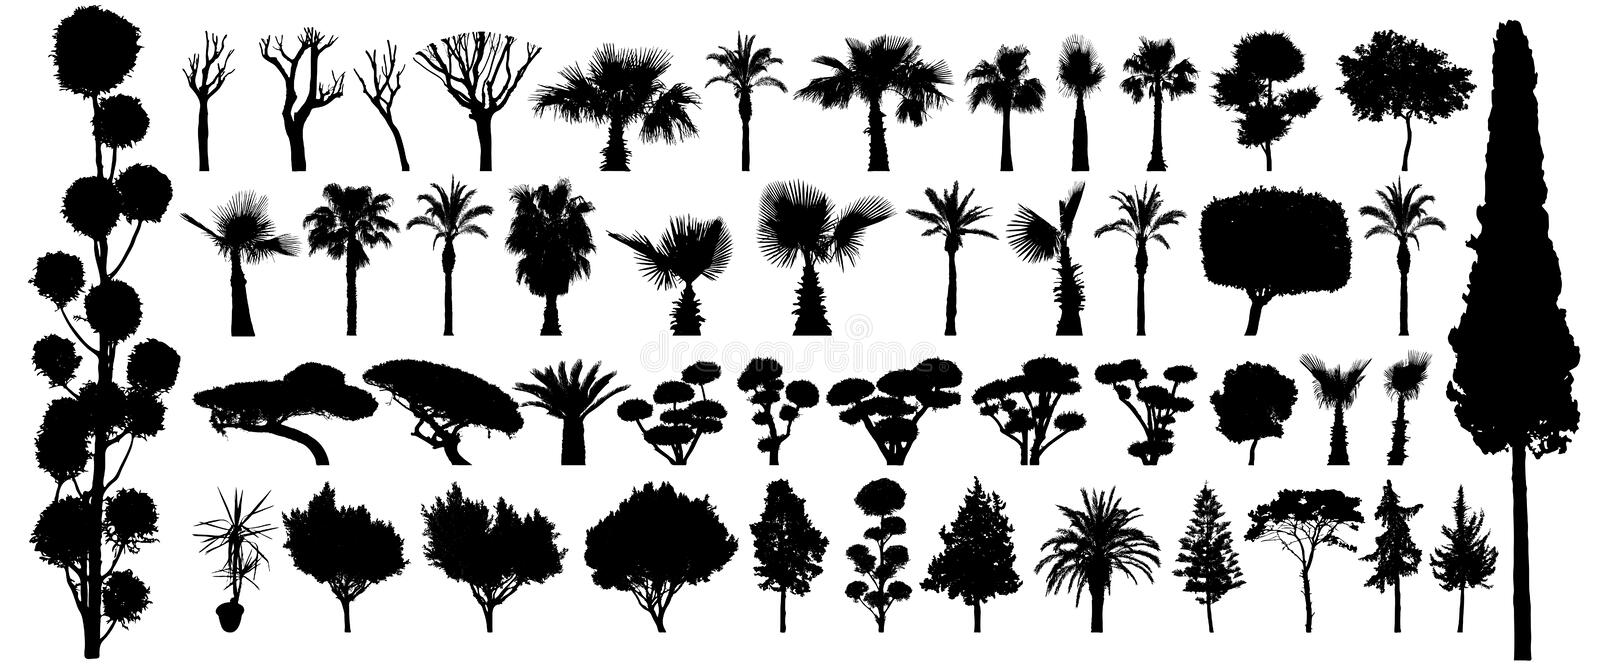 Tree silhouette black vector. Isolated set forest plants bushes on white background.  stock illustration